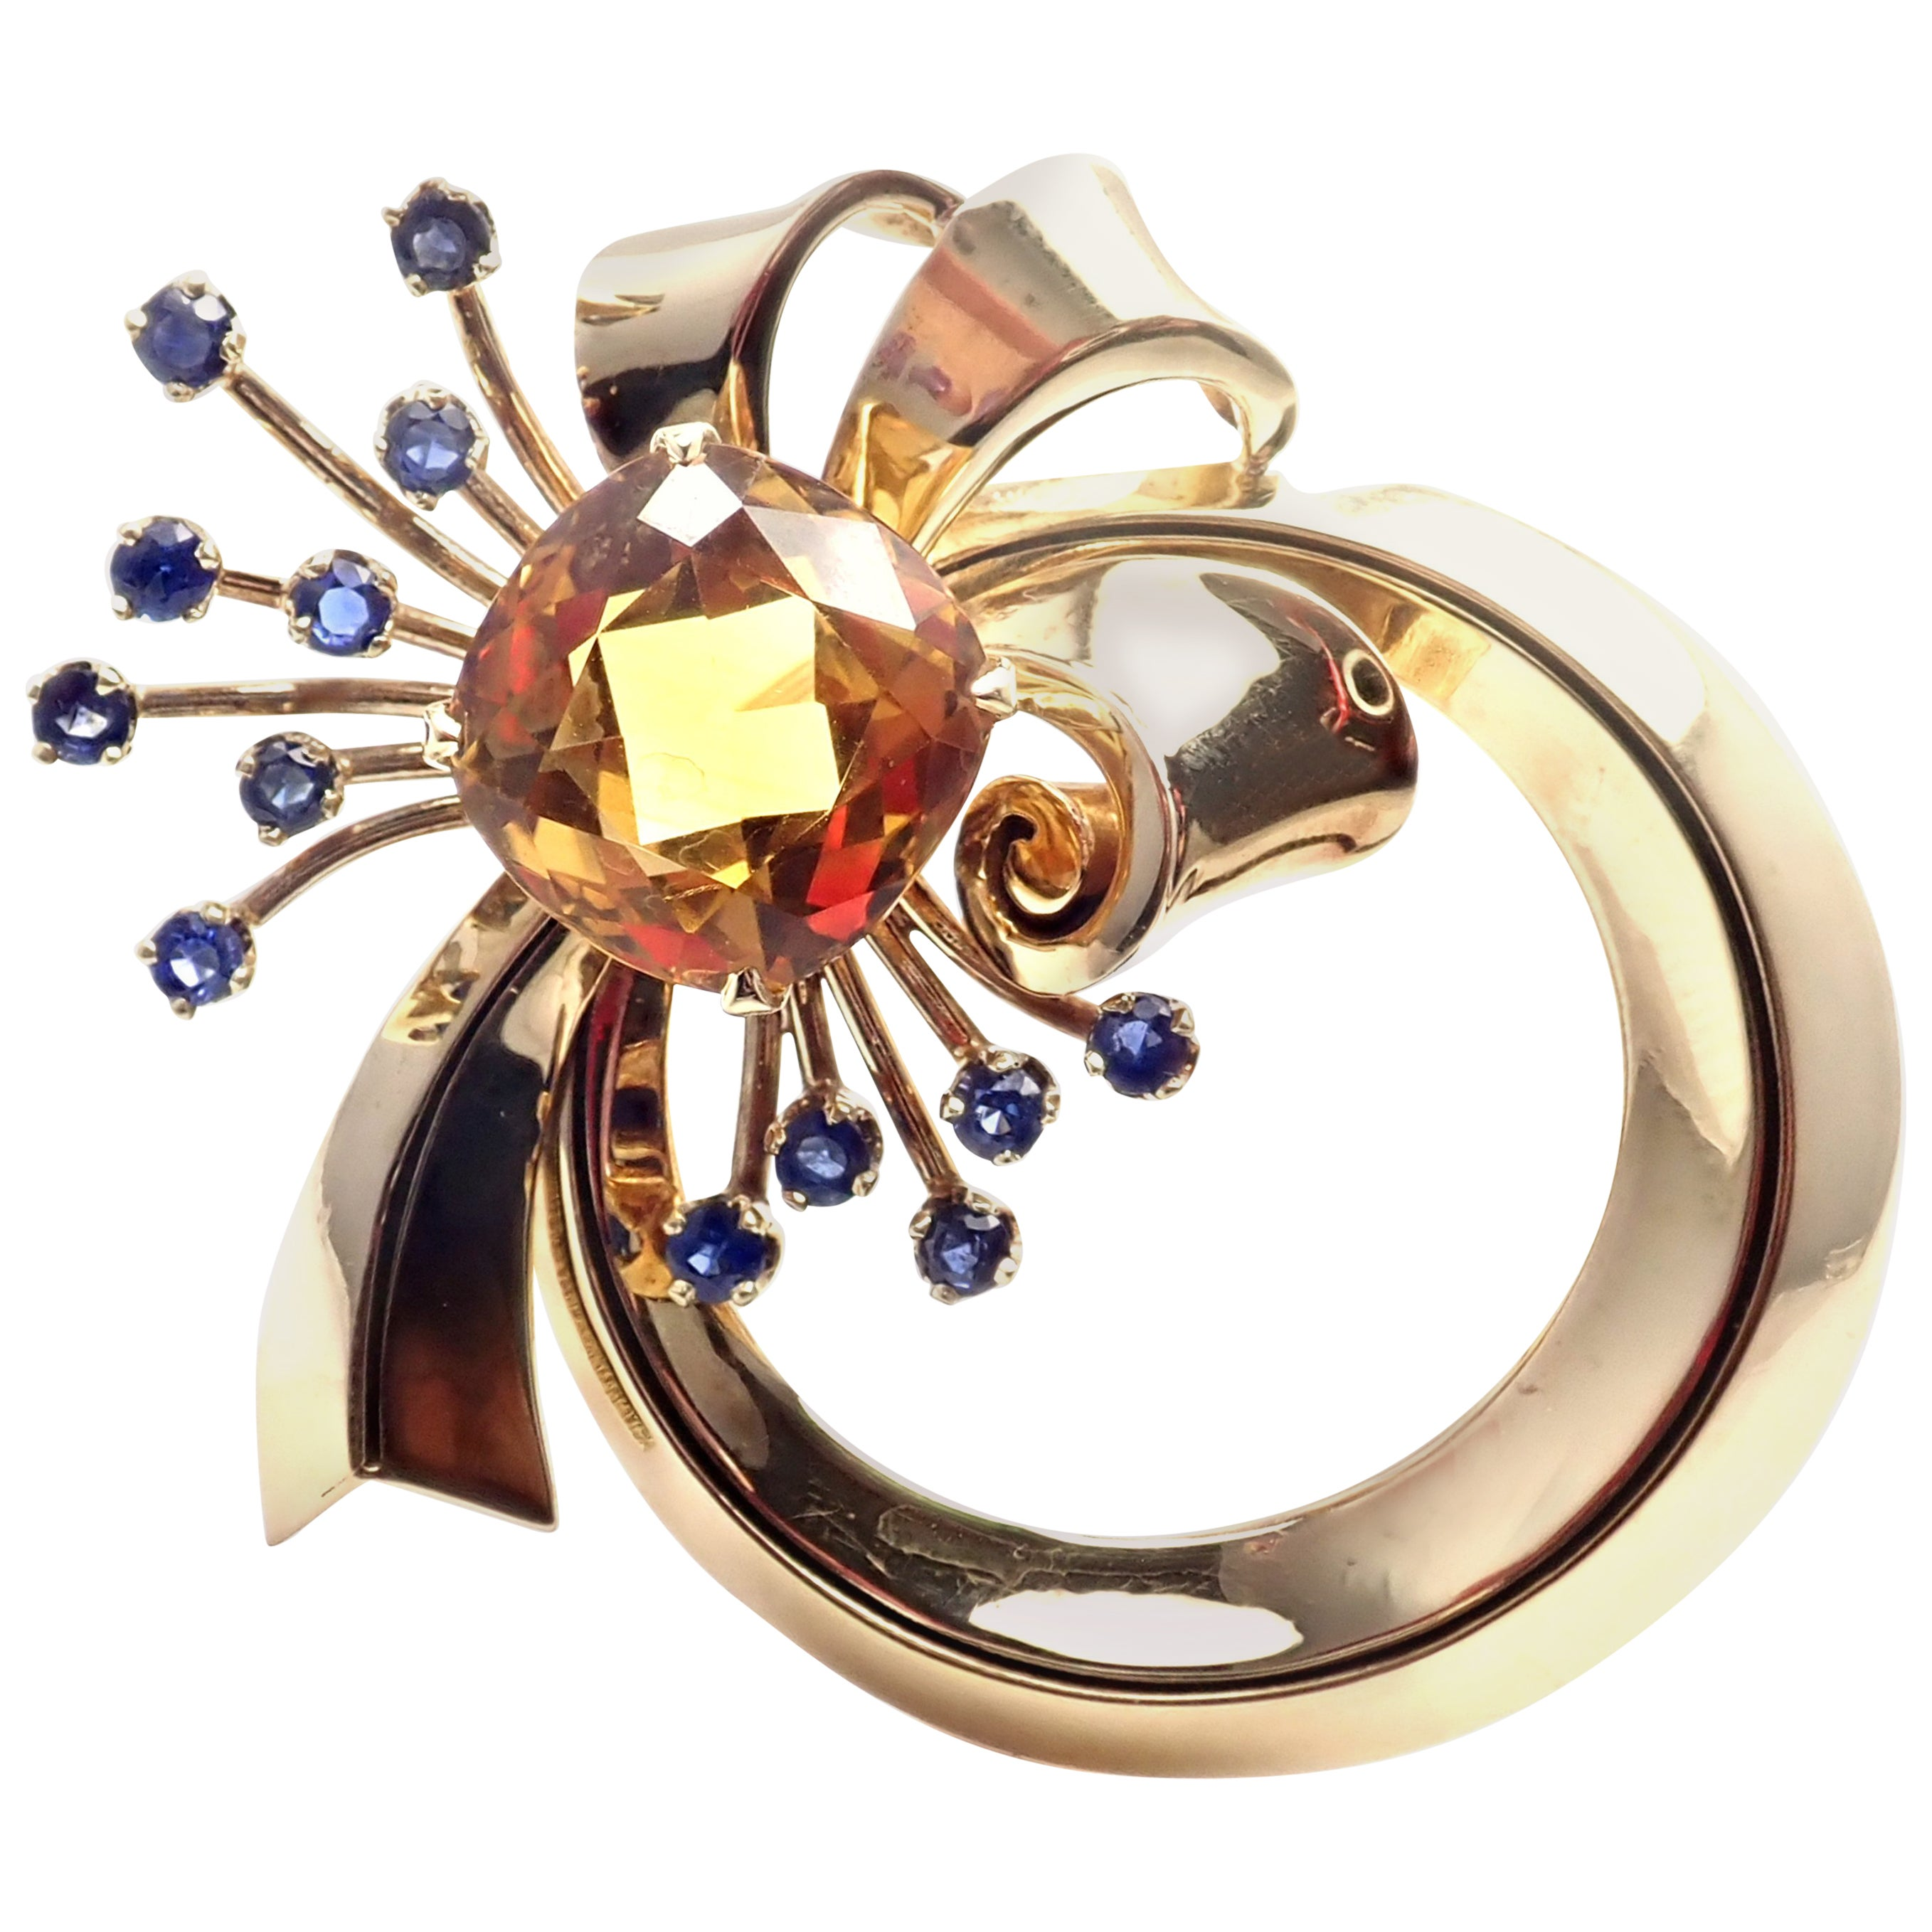 Vintage Tiffany & Co. Sapphire Citrine Yellow Gold Pin Brooch